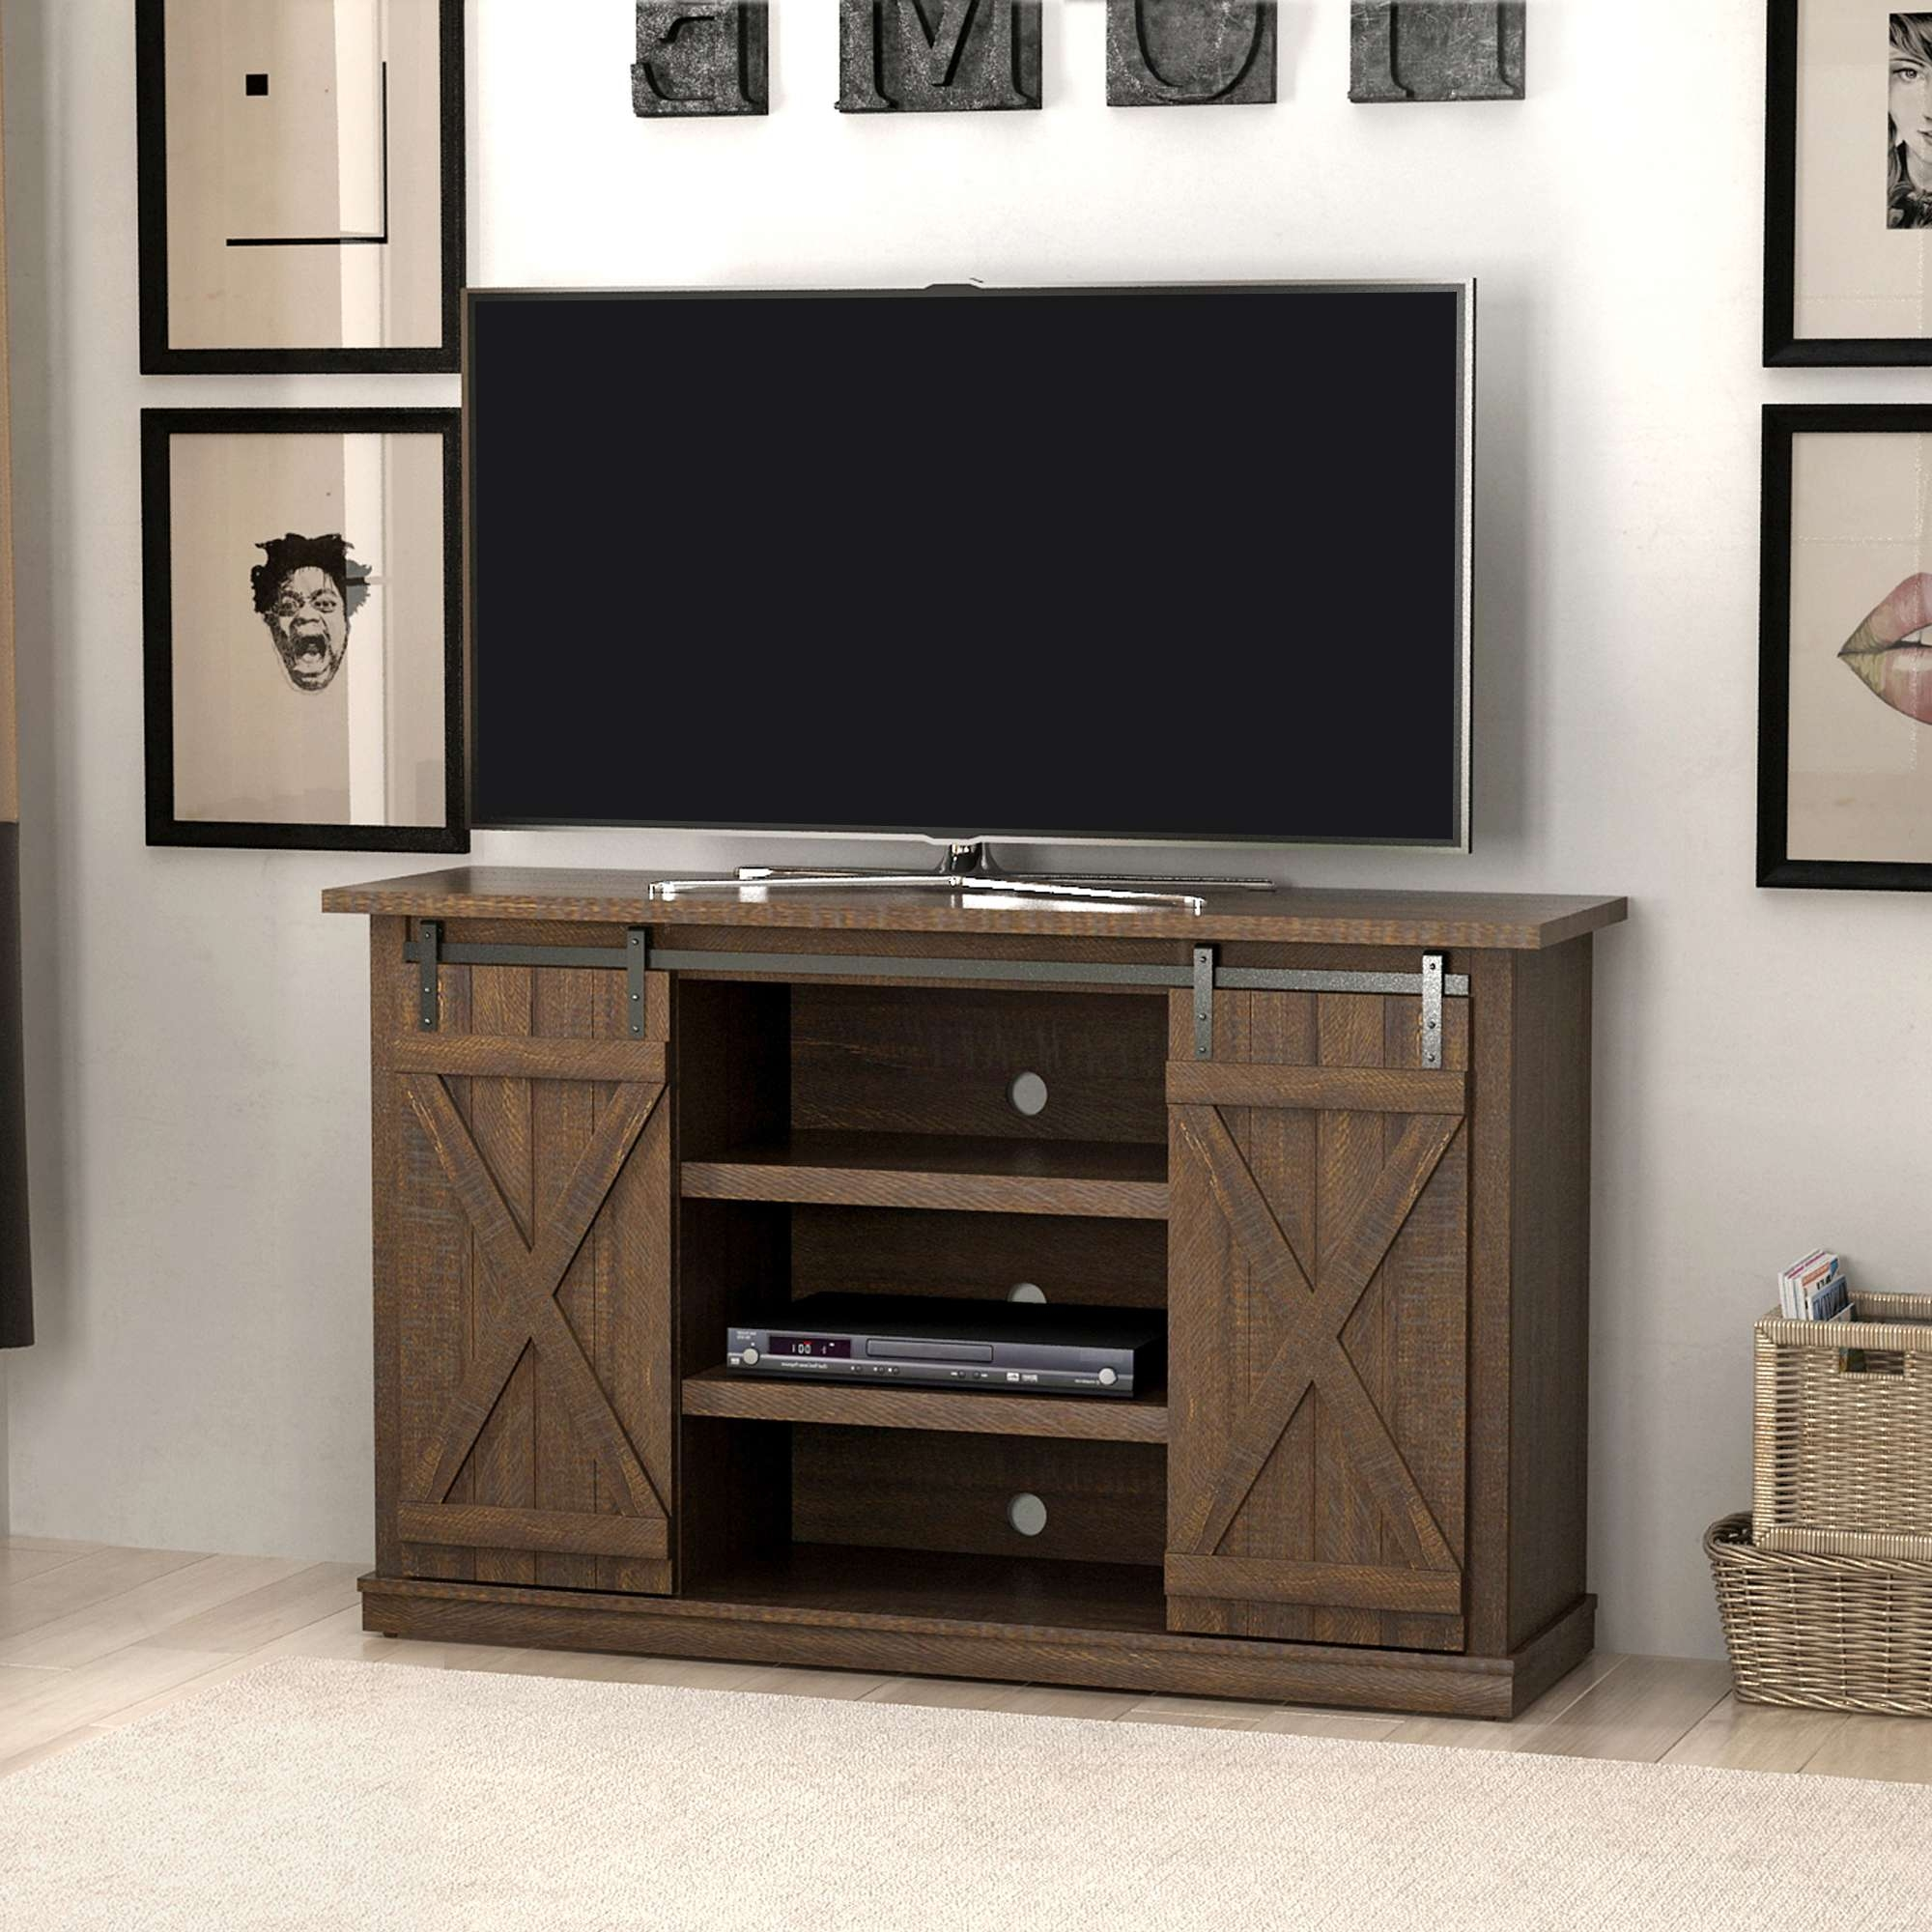 Tv : Cordoba Tv Stands Attractive Cordoba Tv Stand With Mount With Cordoba Tv Stands (View 7 of 15)